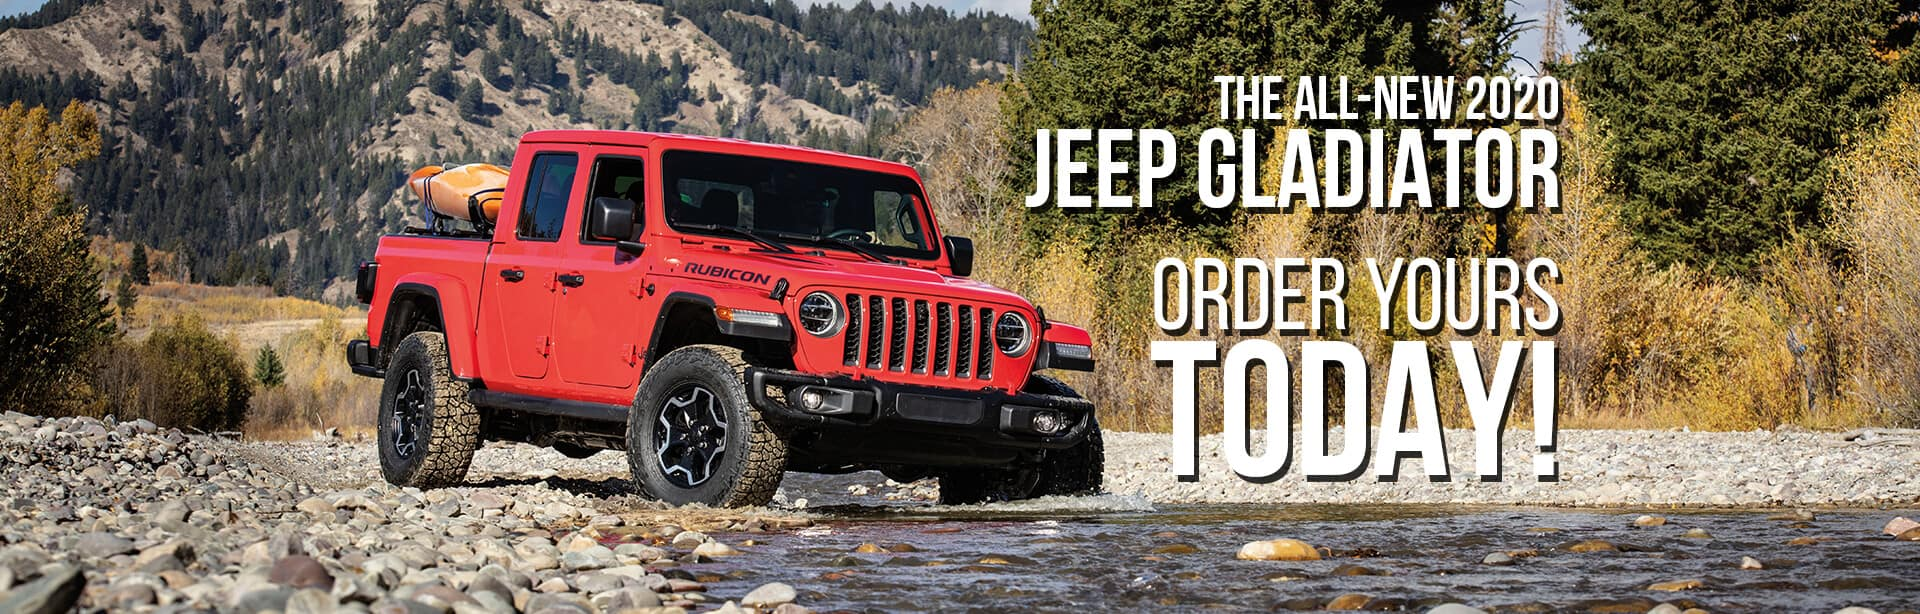 2019 Jeep Gladiator Inventory near Indianapolis, Indiana.